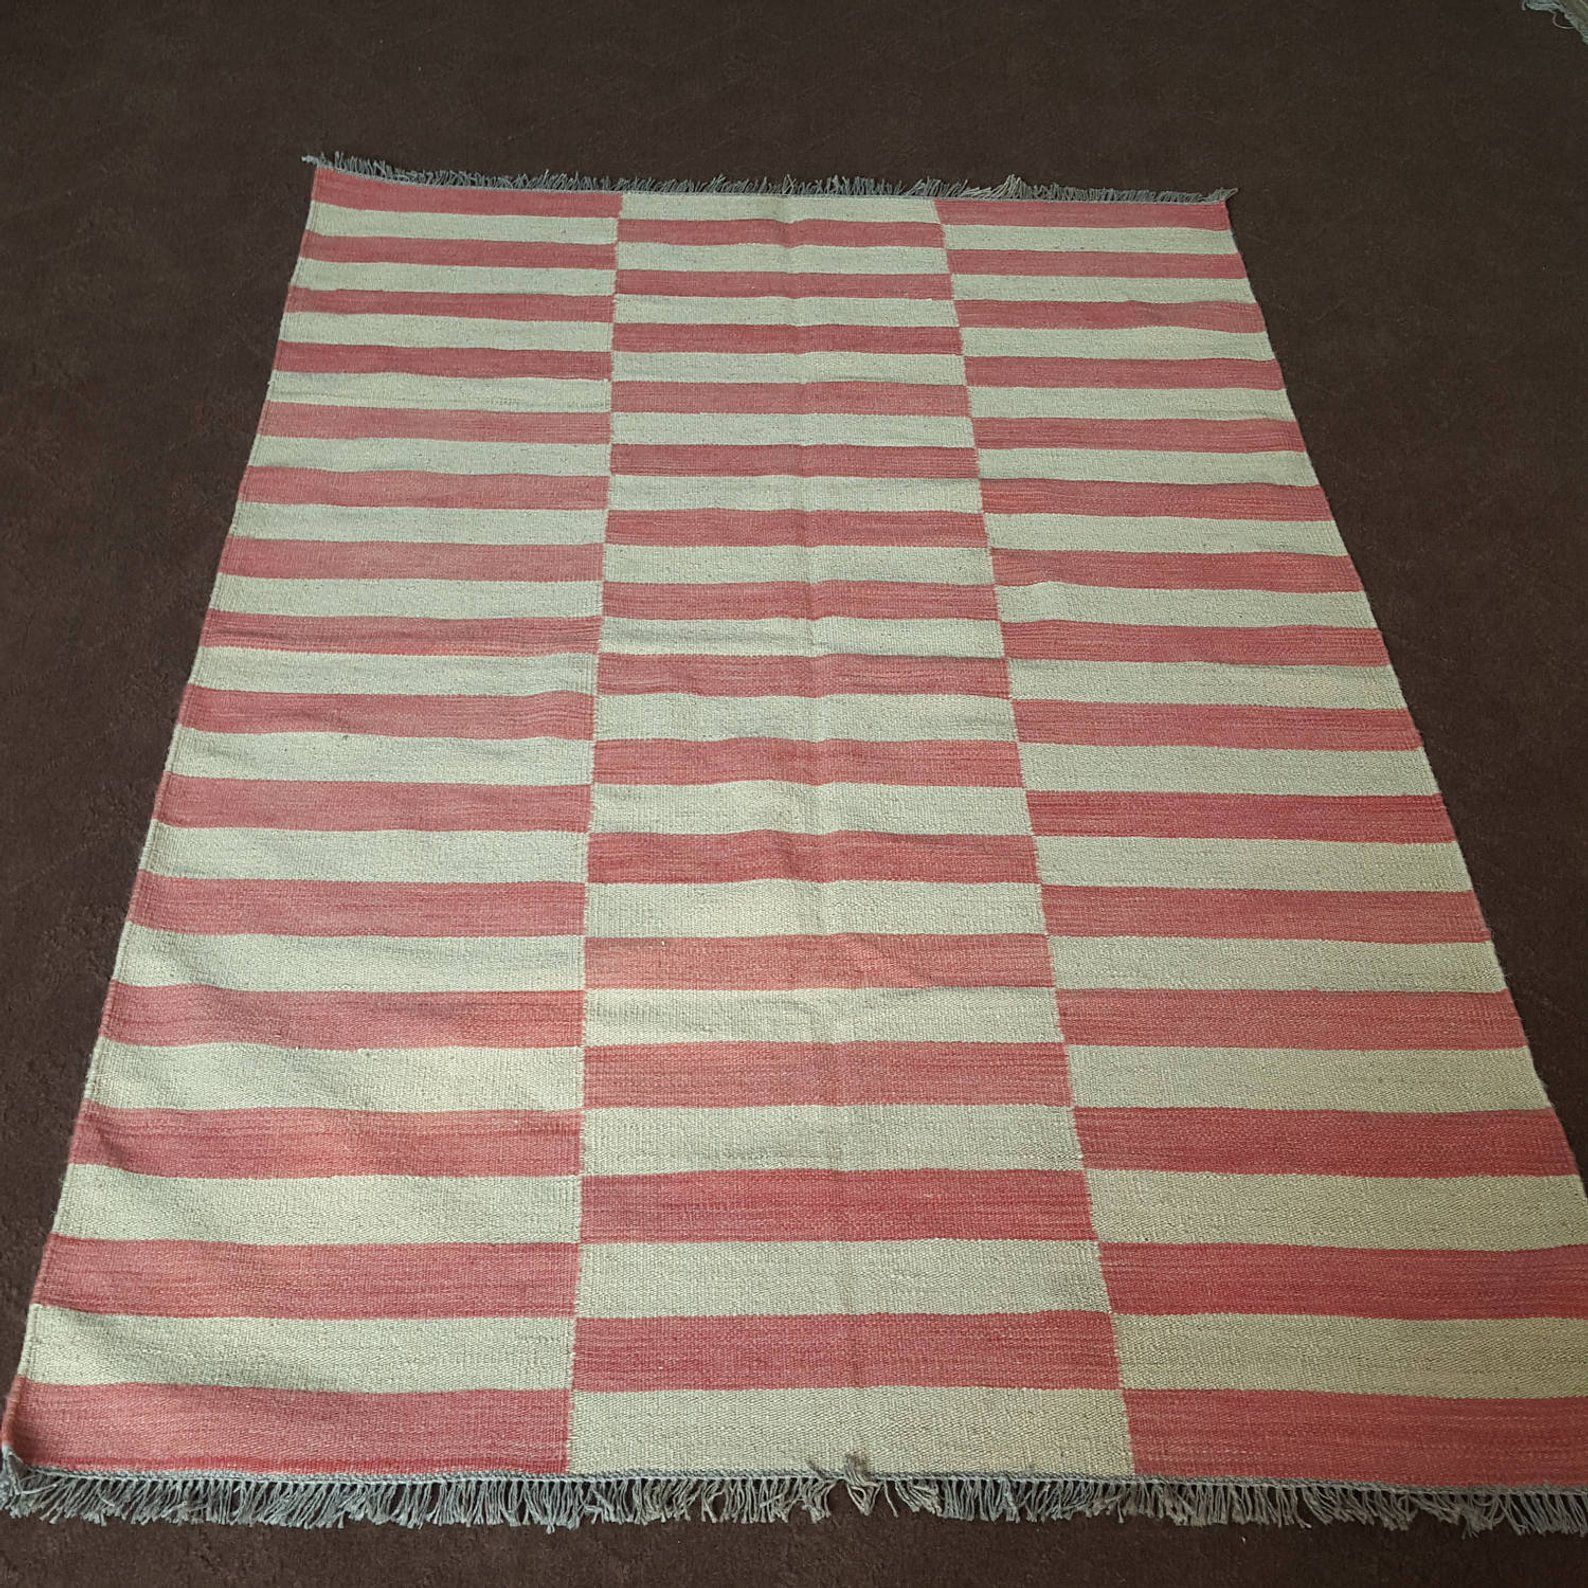 Made To Order Pink And Off White Ivory Striped Kilim Dhurrie